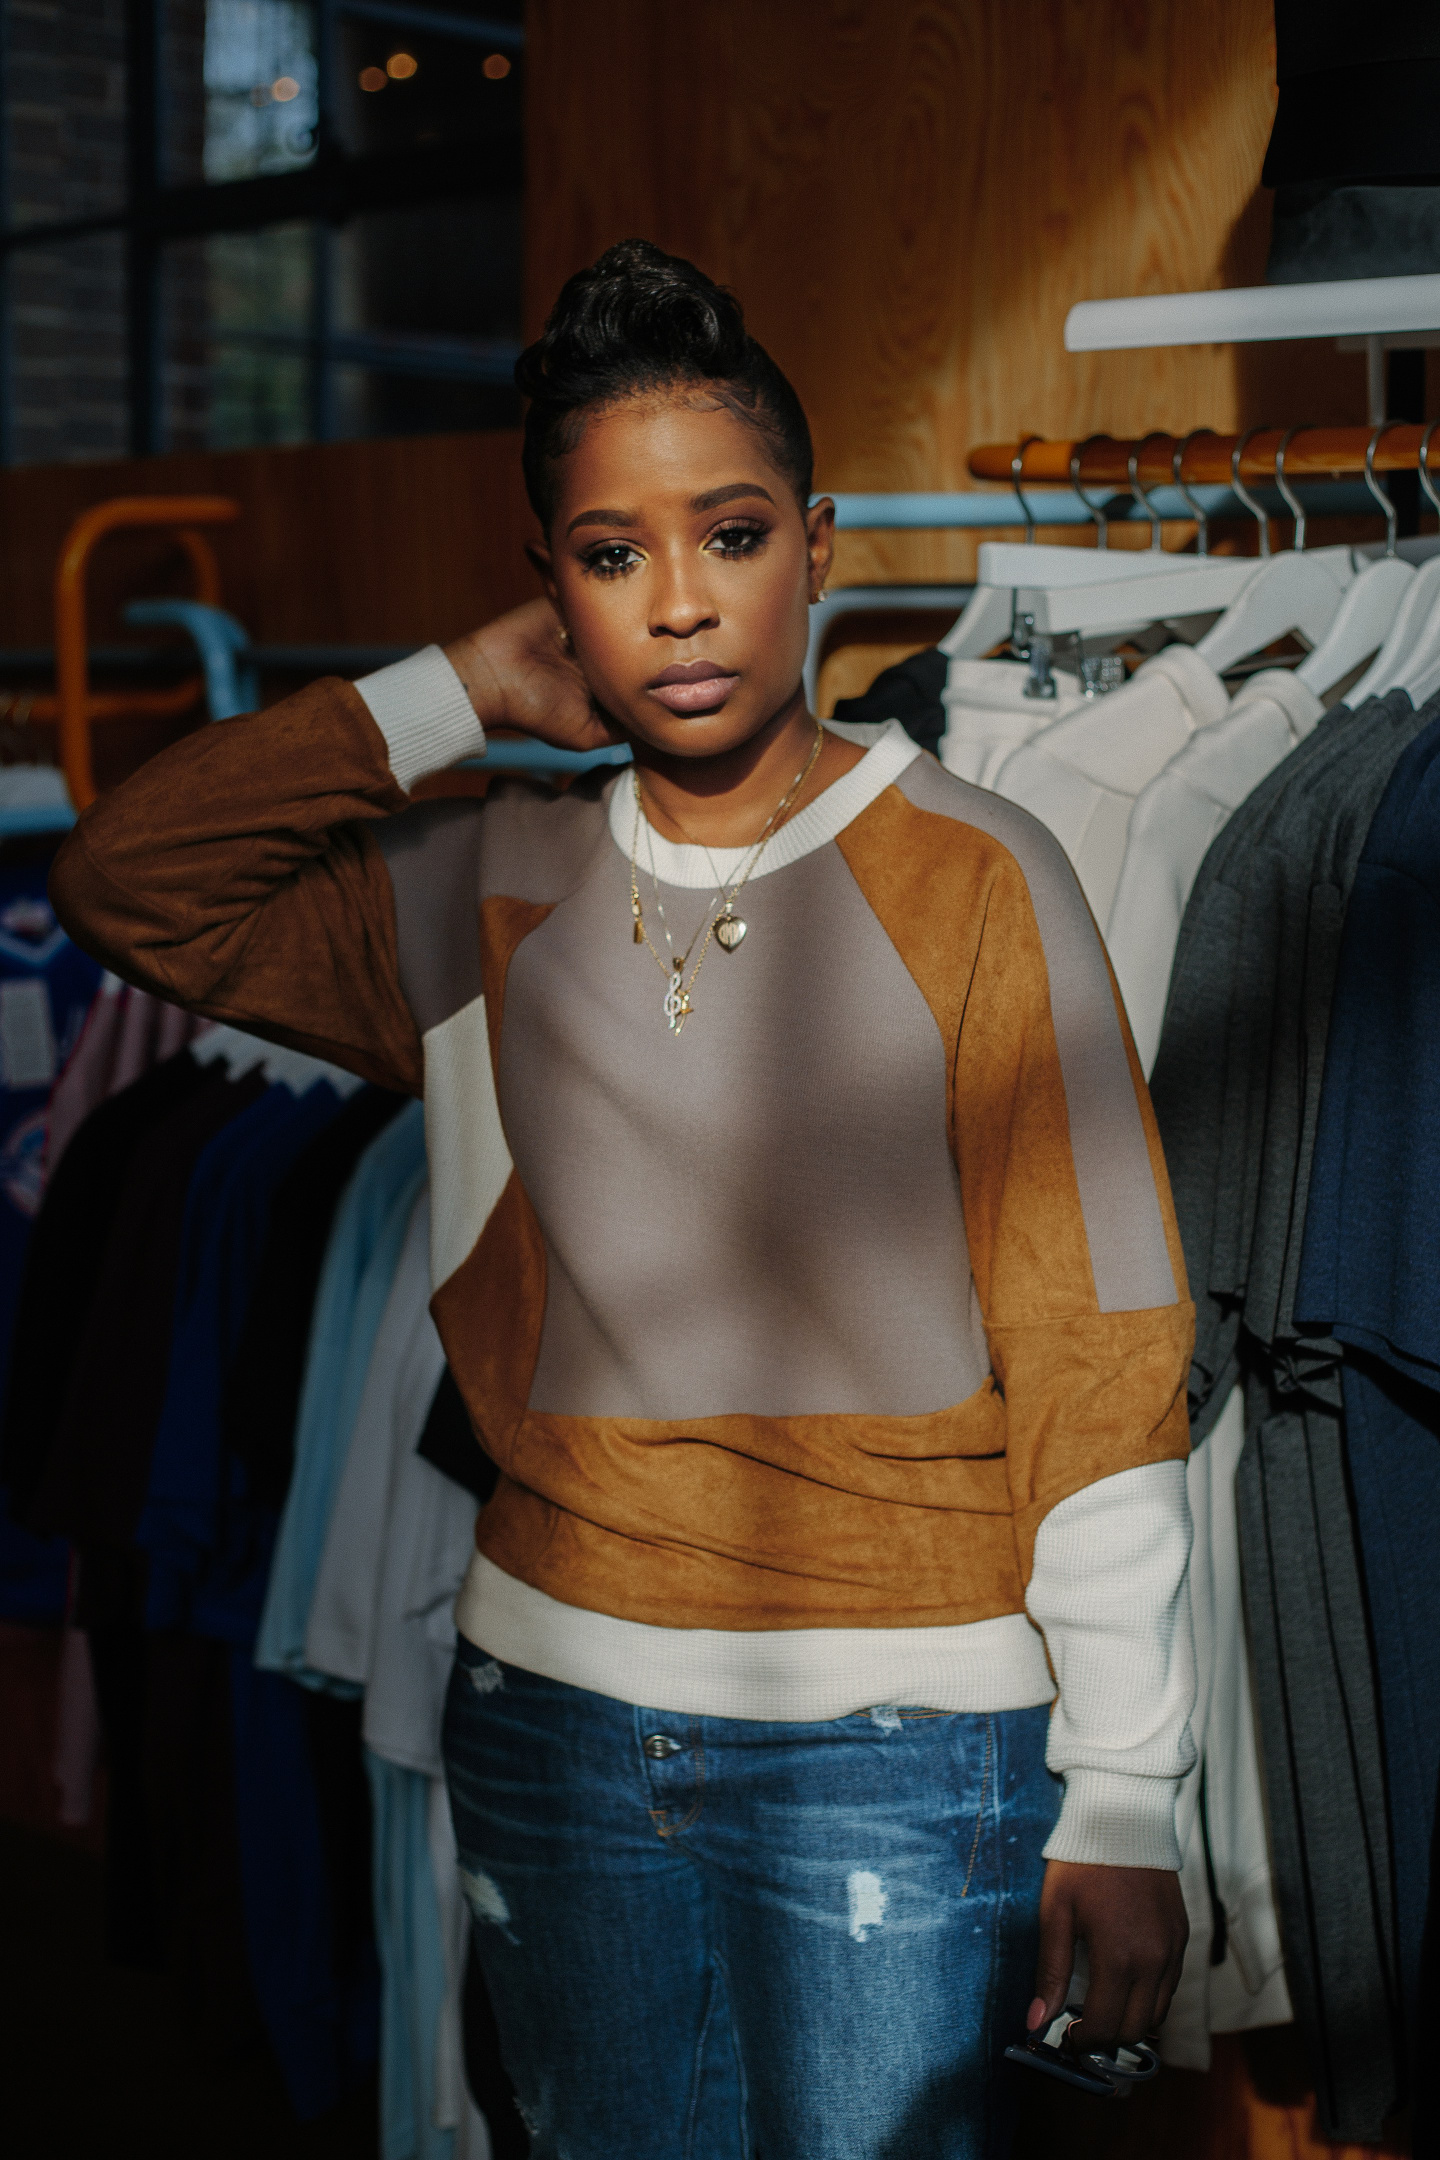 Dej Loaf en Lil Durk dating 2016